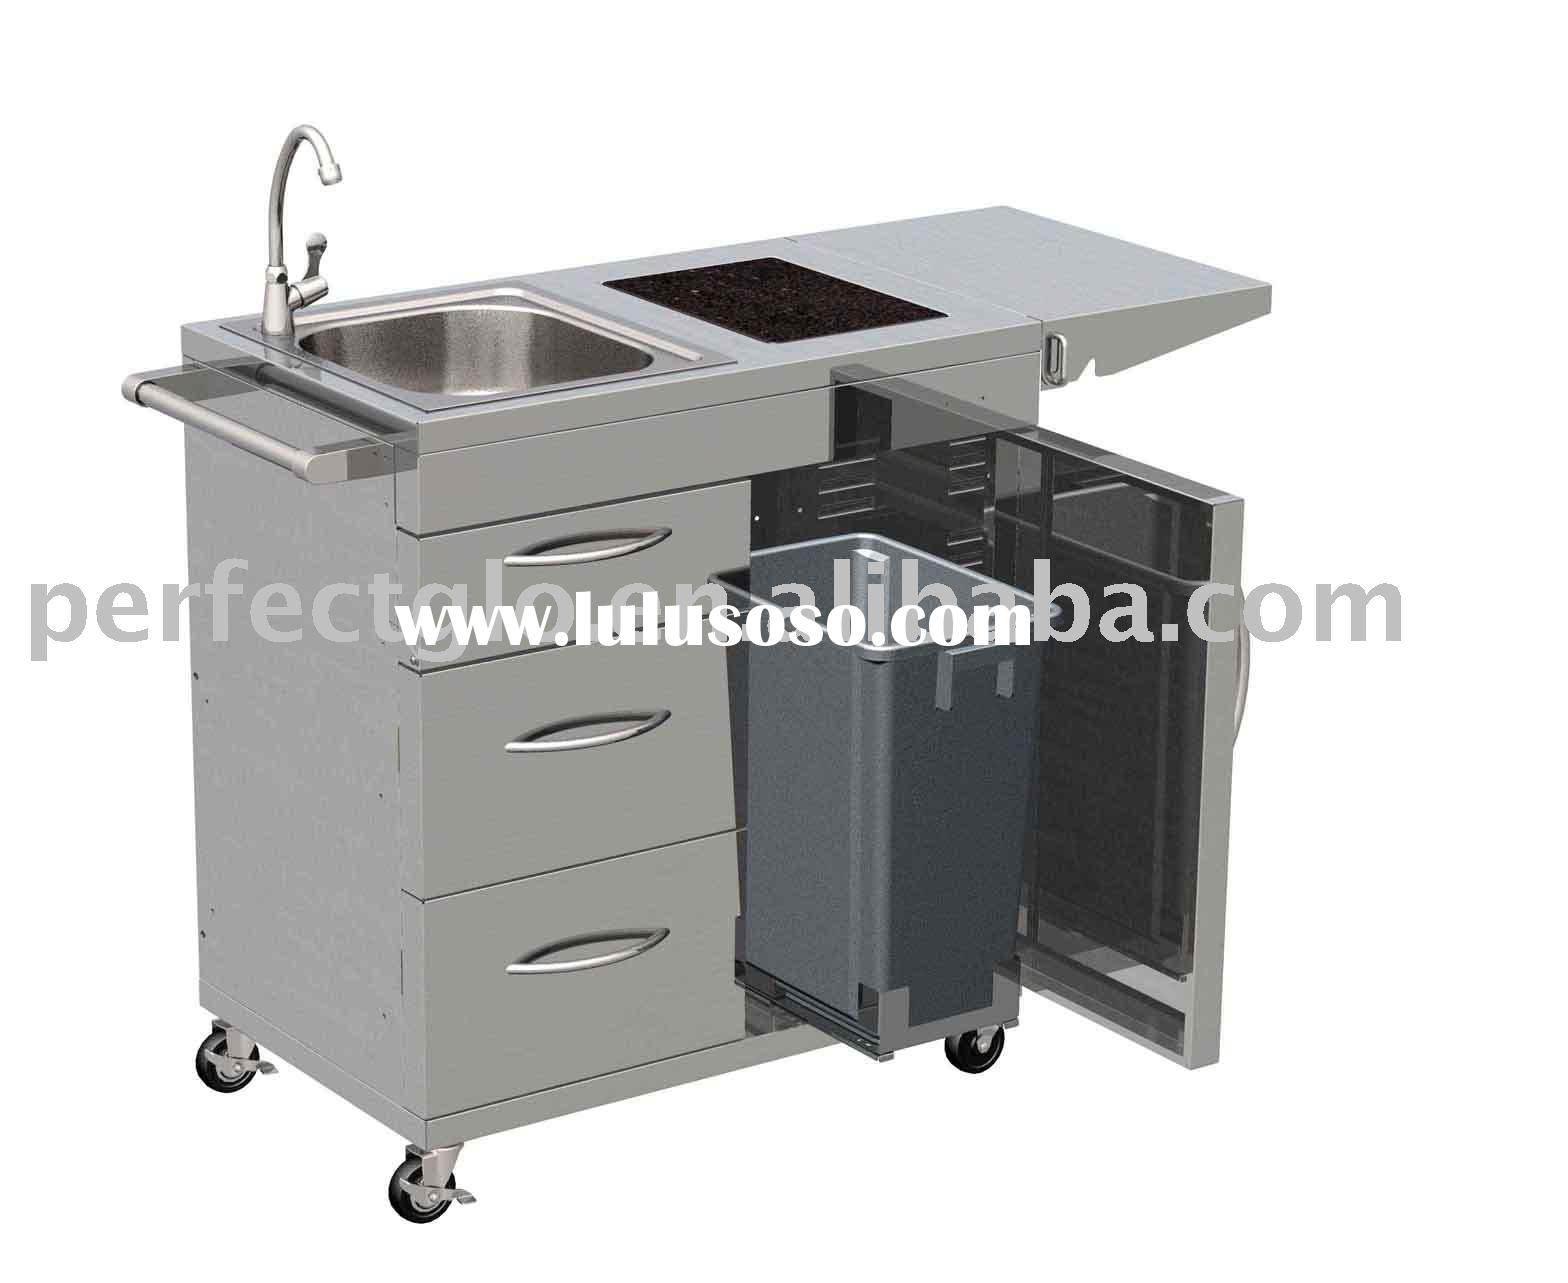 stainless steel carts kitchen where to buy cabinets renovations cart